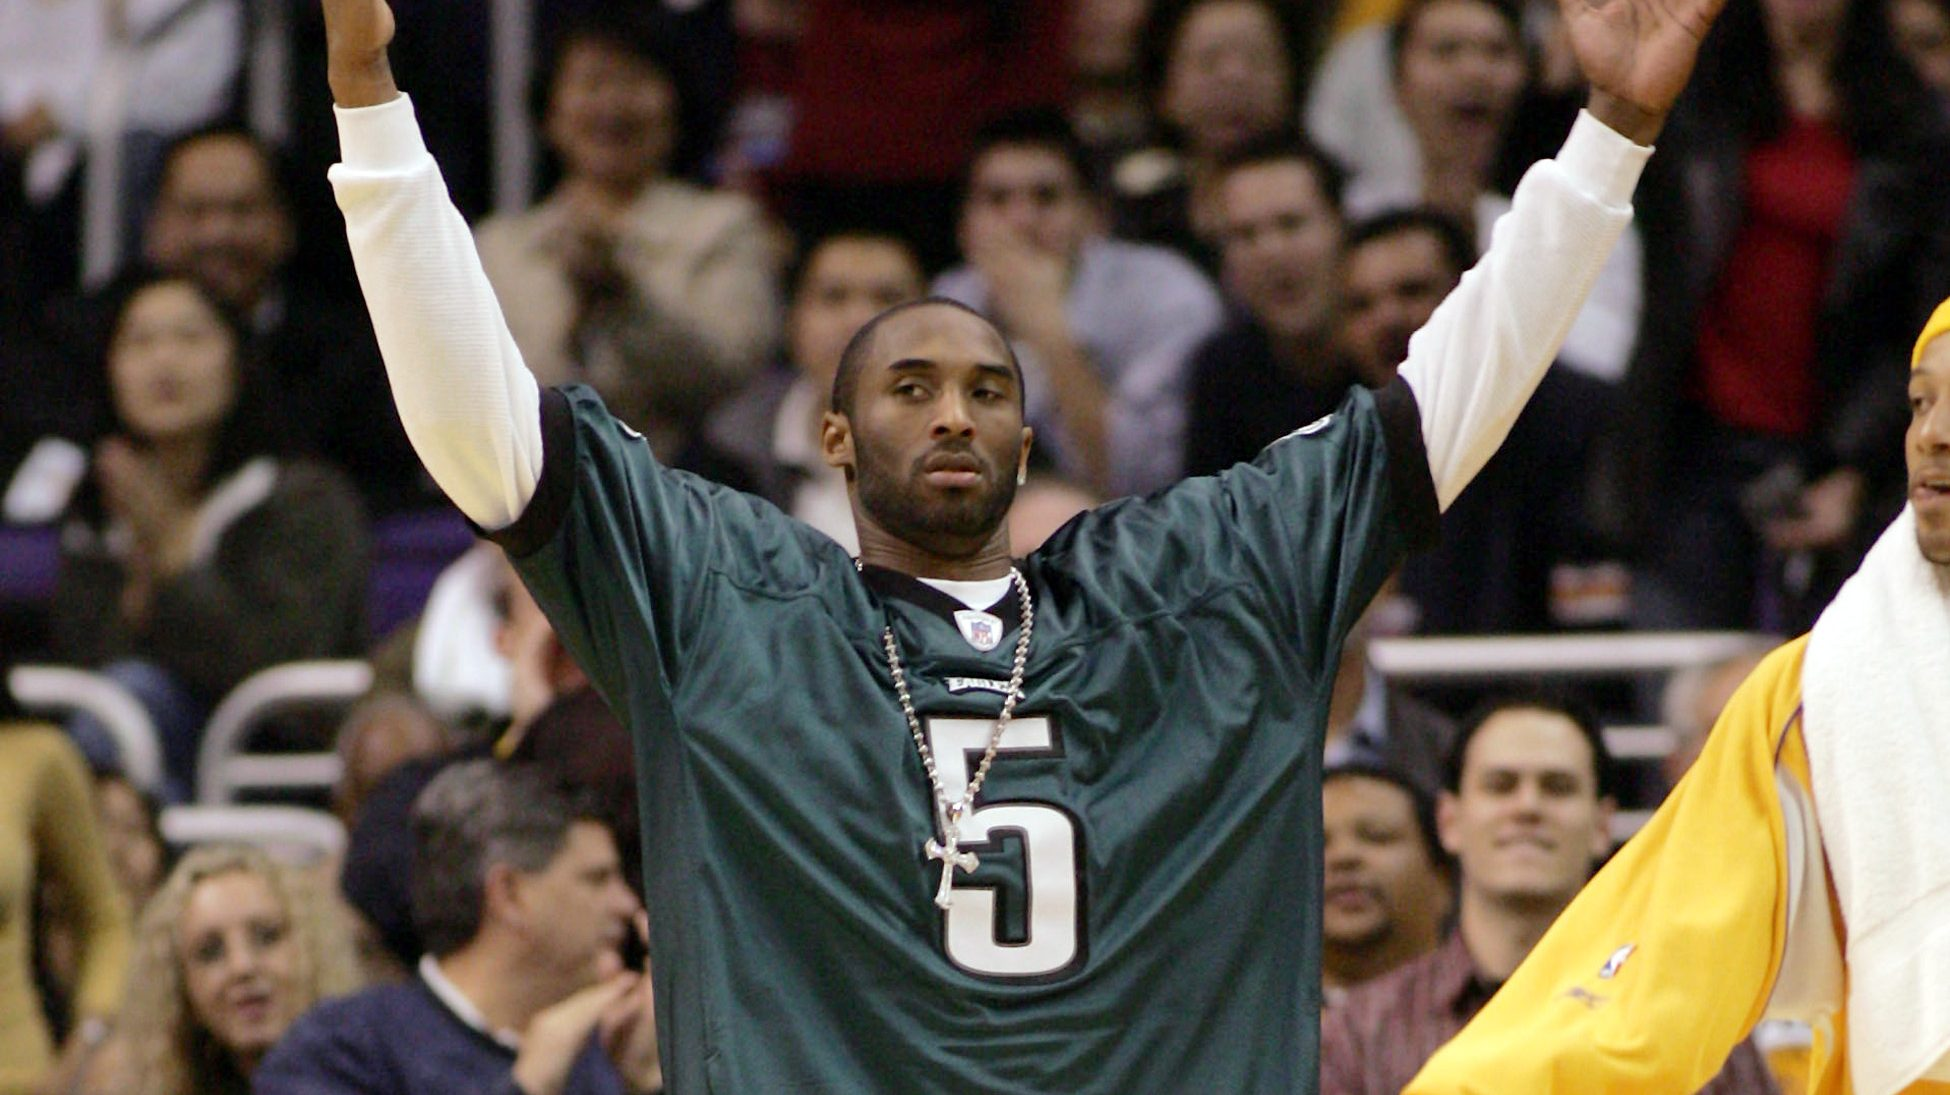 Eagles Add Amazing Kobe Bryant Mural to Practice Facility   Heavy.com